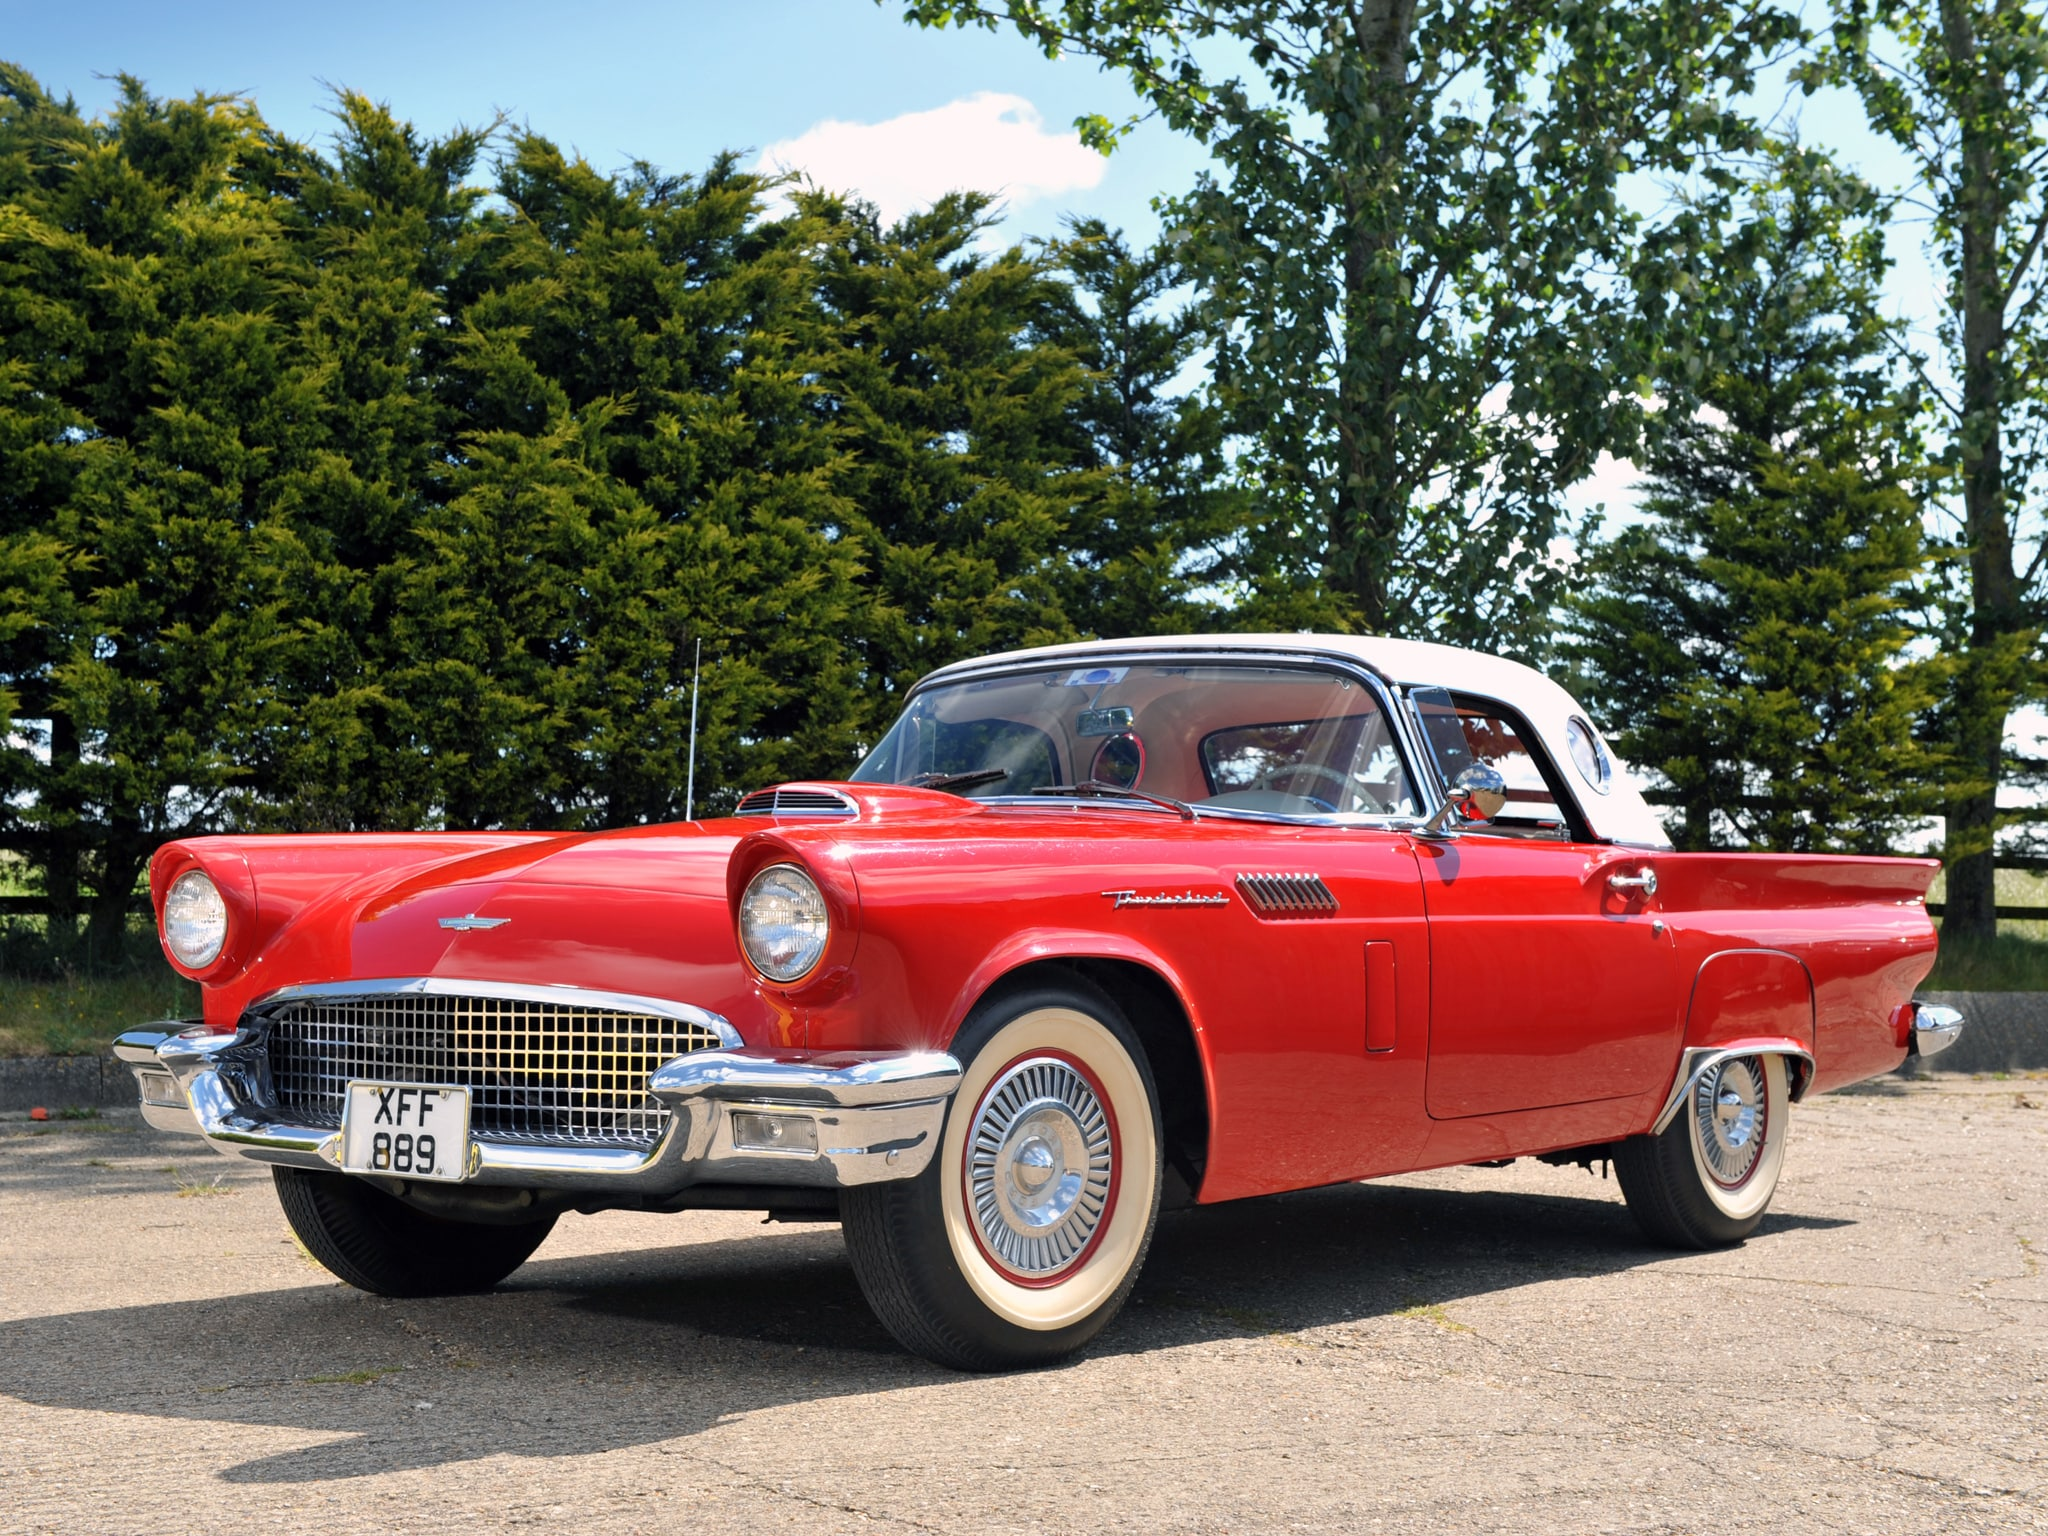 1957 Ford Thunderbird Full hd wallpapers